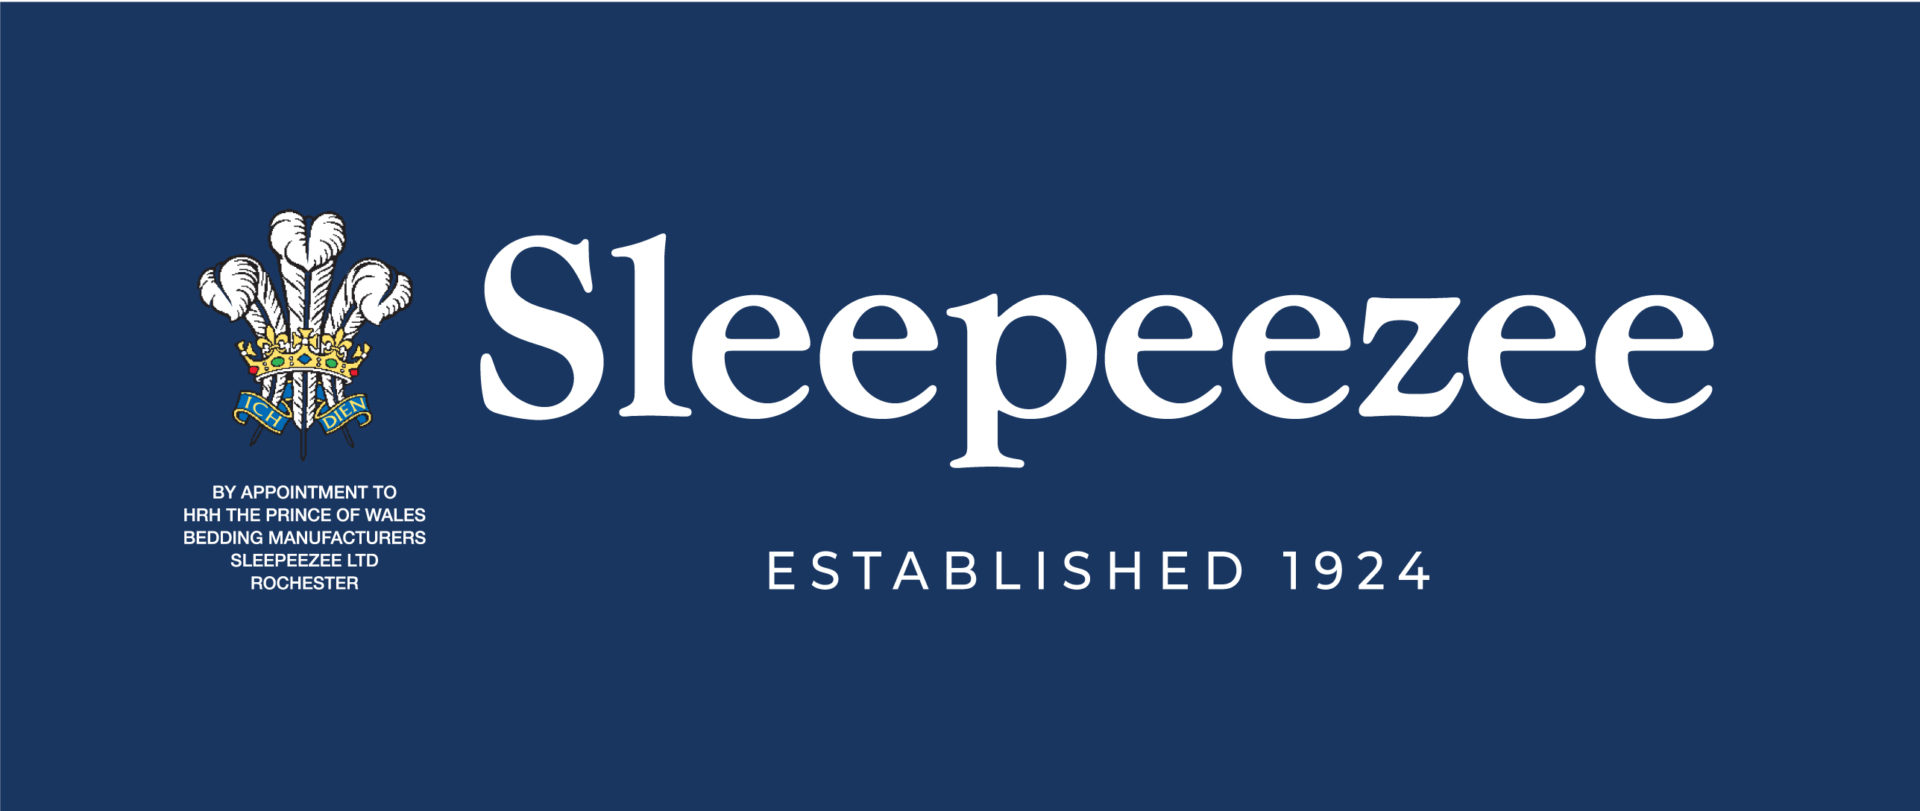 Sleepeezee Established 1924 with Crest Logo